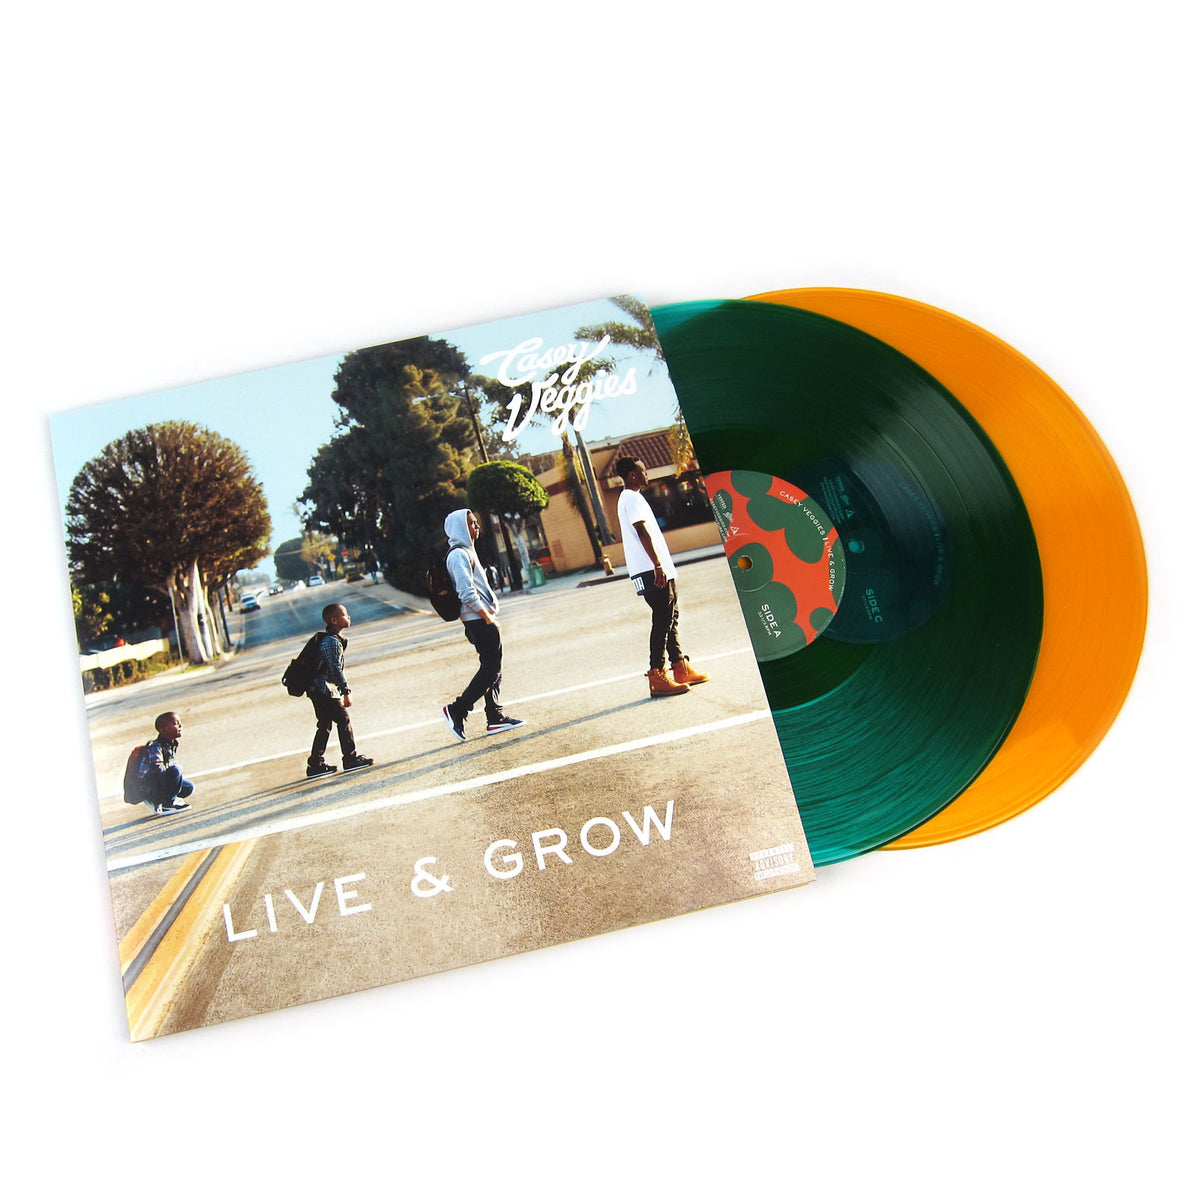 Casey Veggies: Live & Grow (Colored Vinyl) Vinyl LP